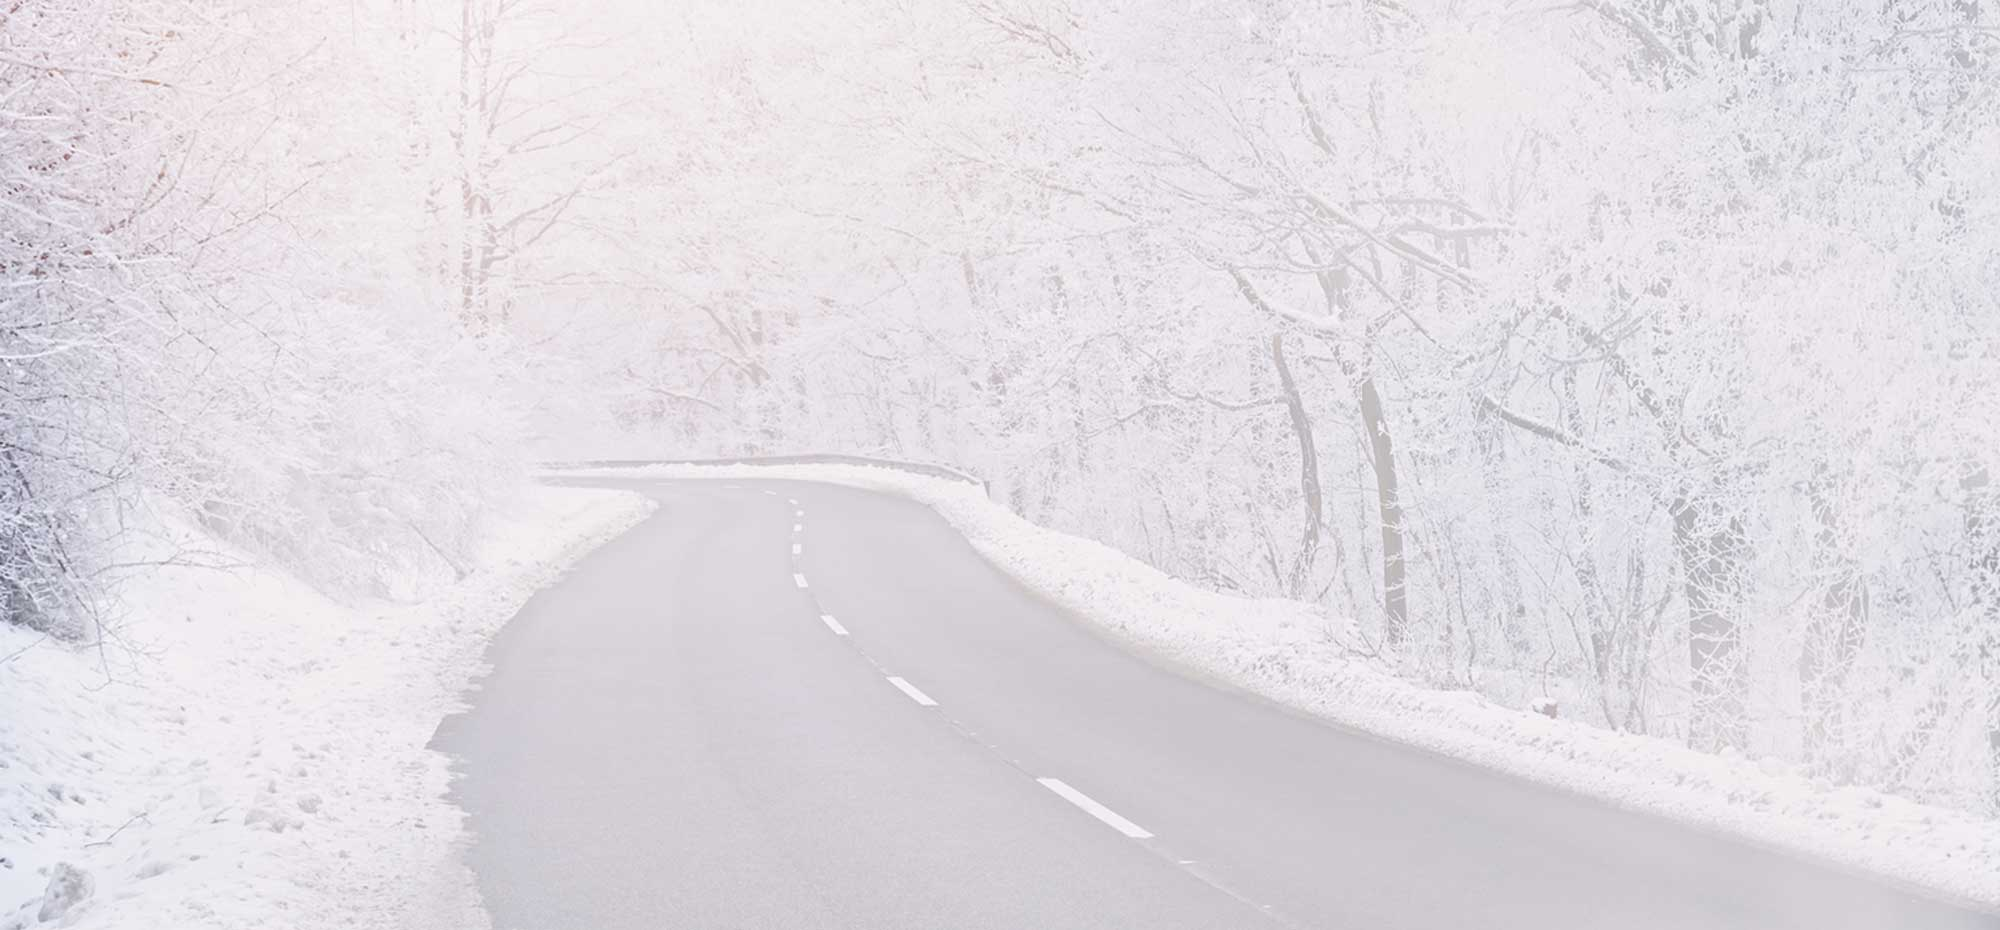 Background images driving 5